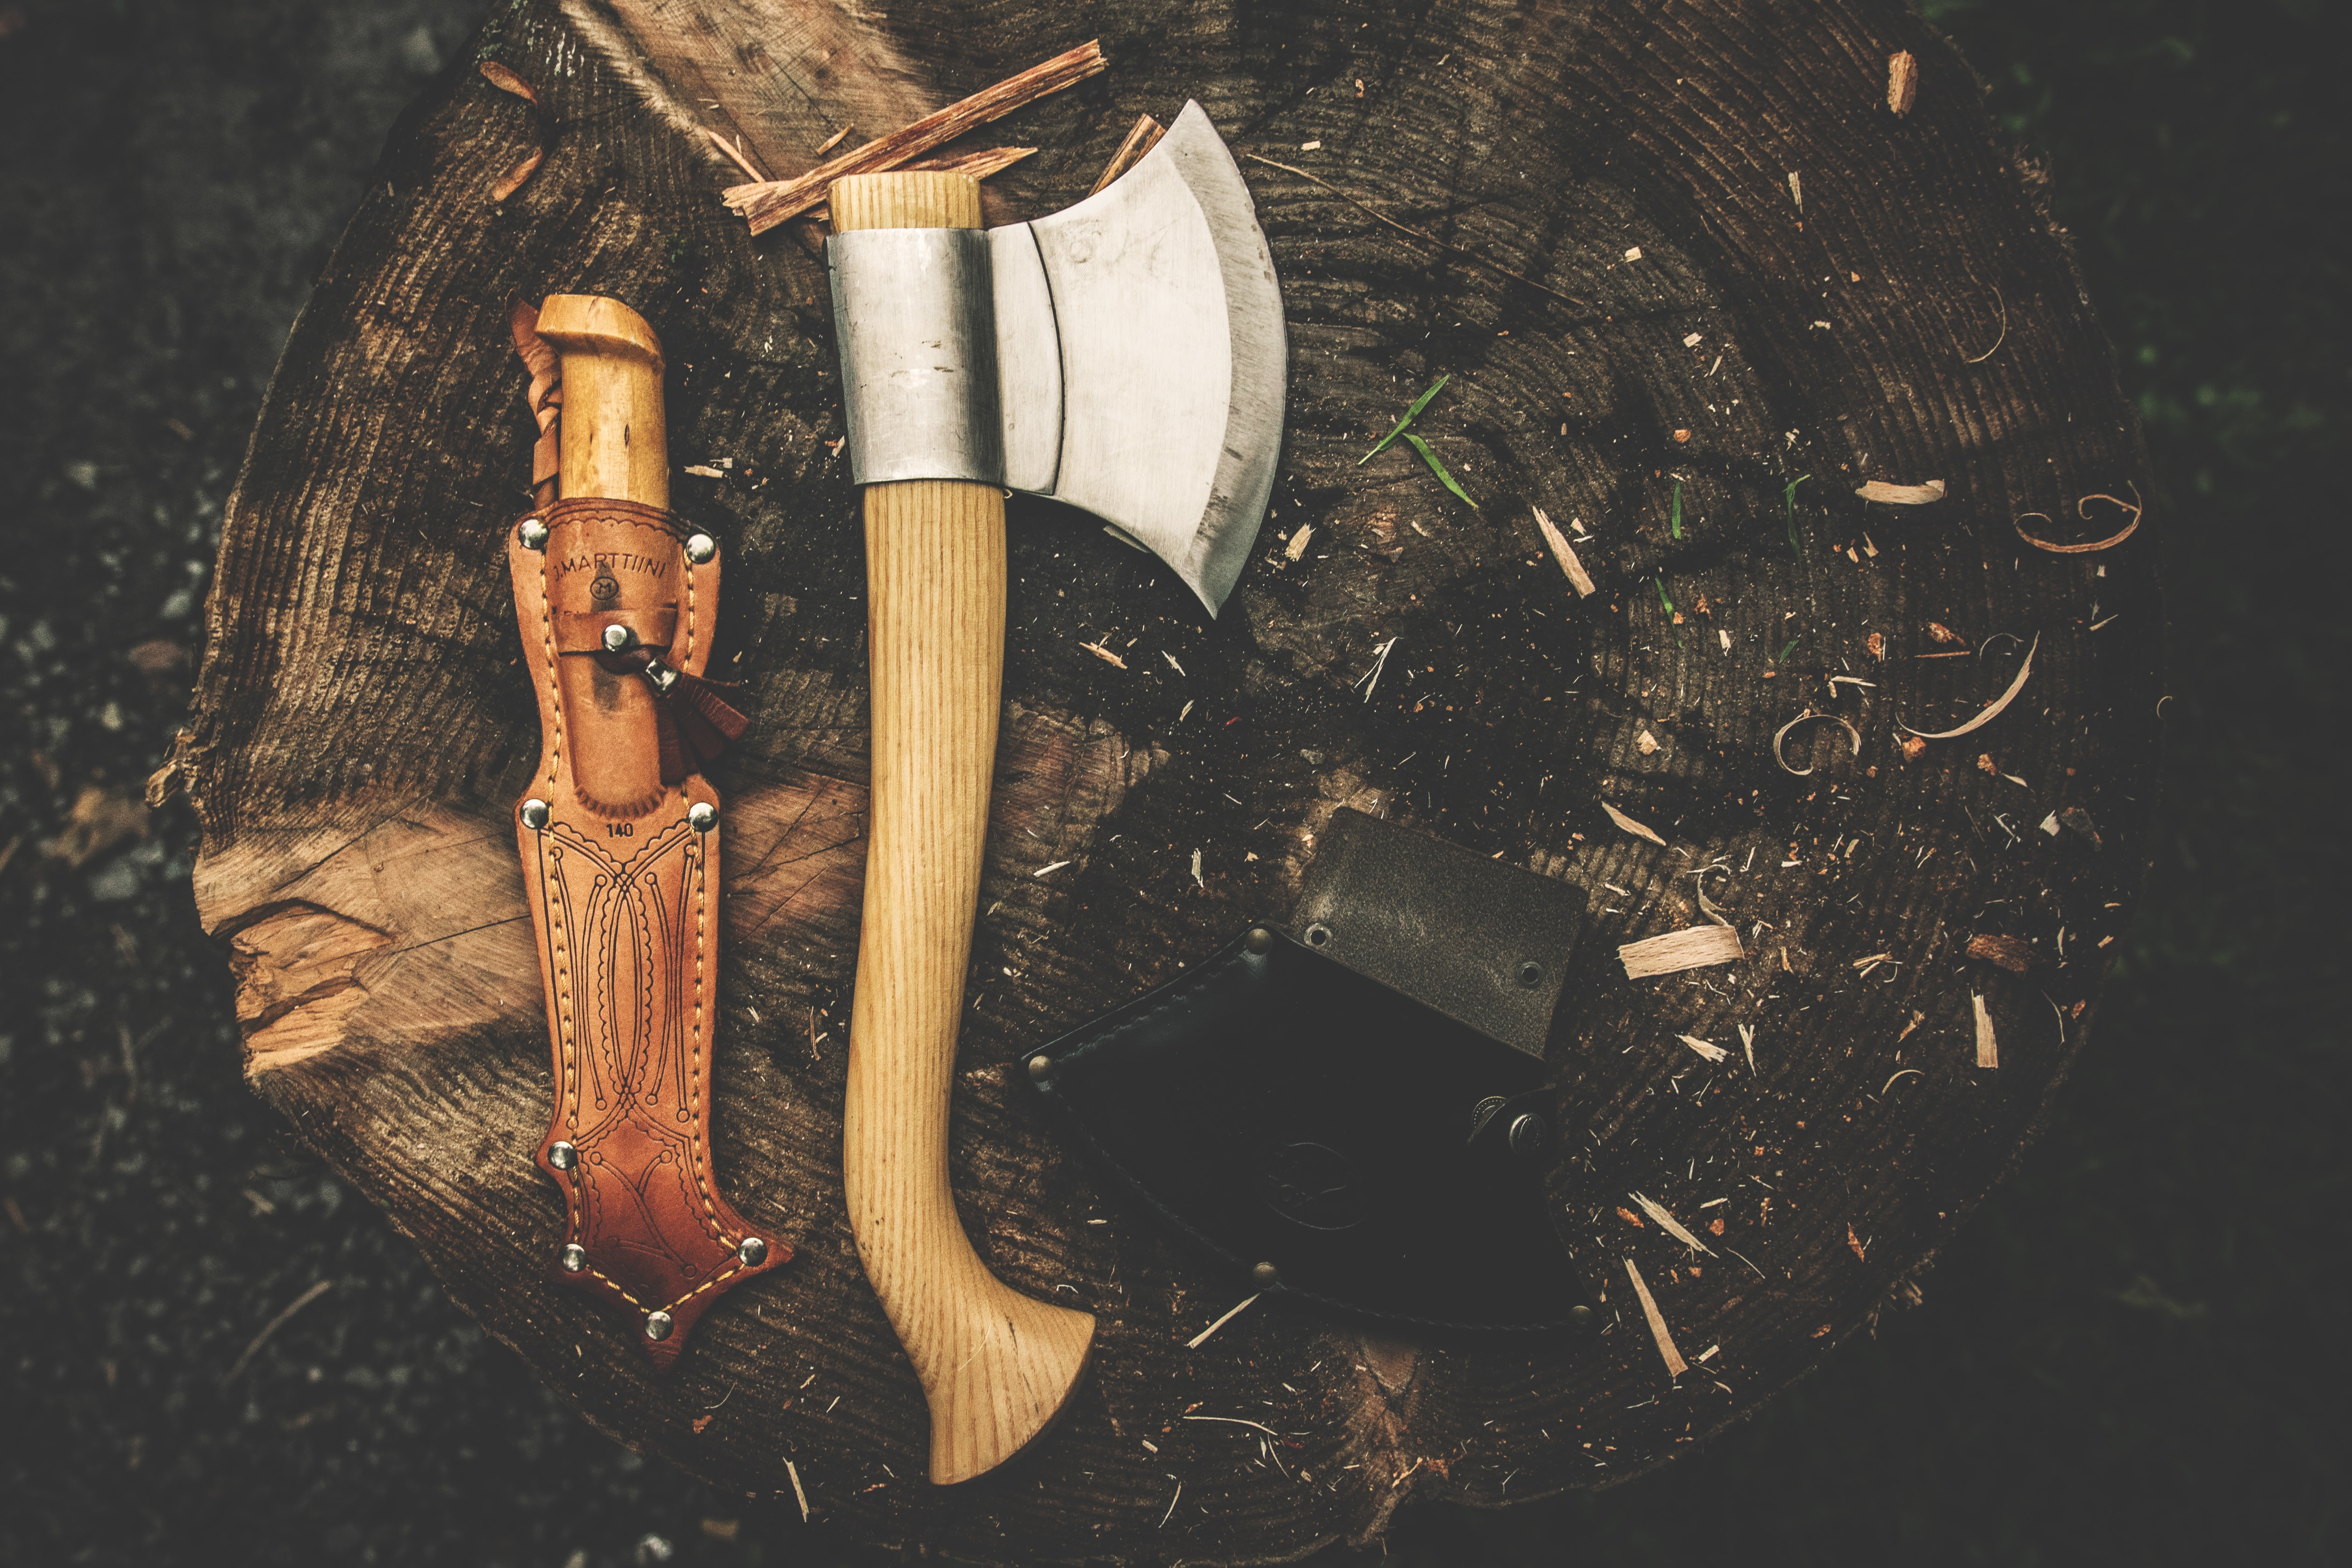 ax and knife with sheath